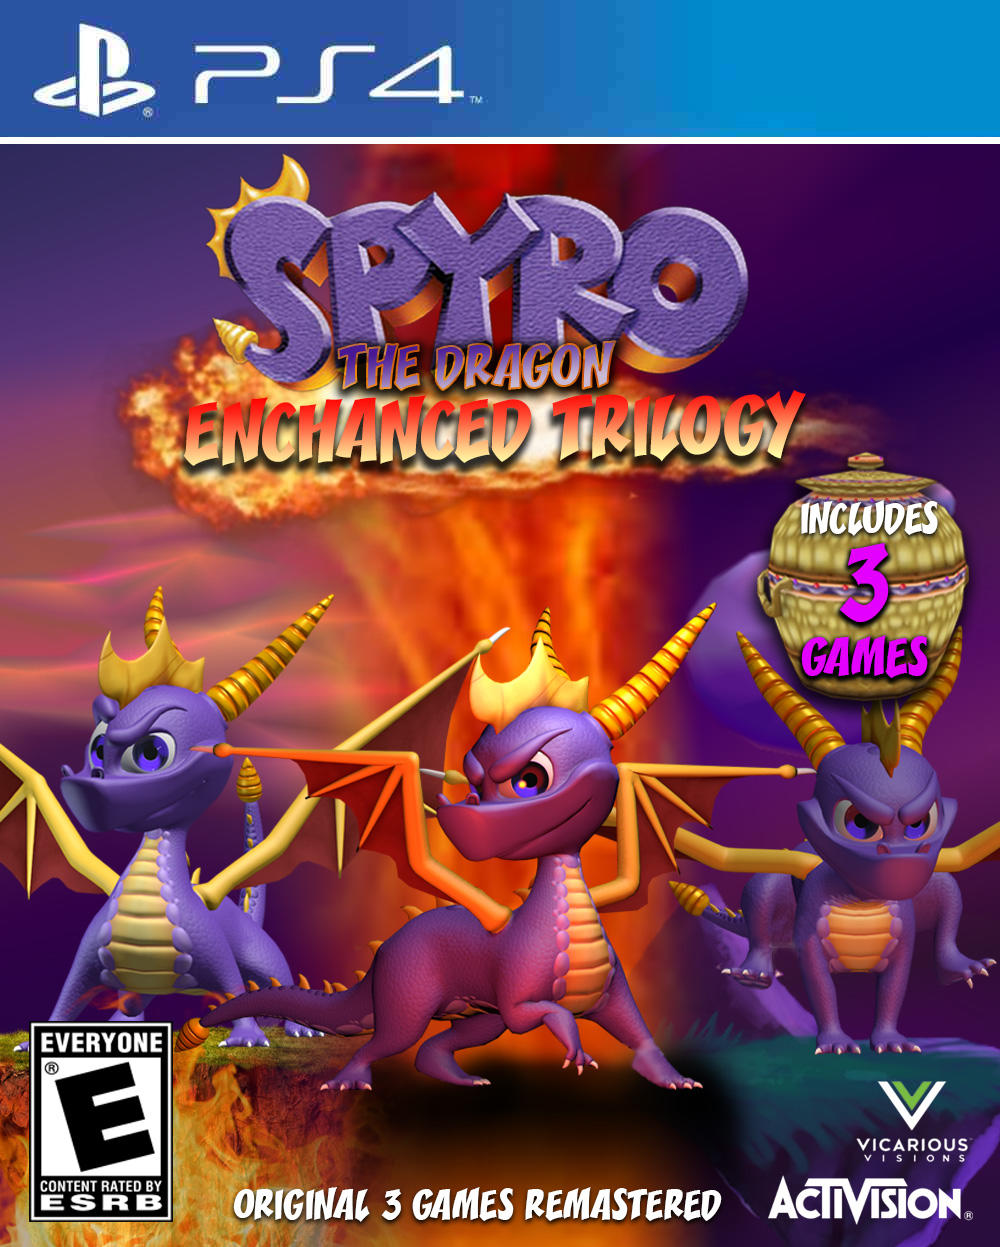 Spyro The Dragon Enchanced Trilogy PS4 Cover  Gaming  Know Your Meme